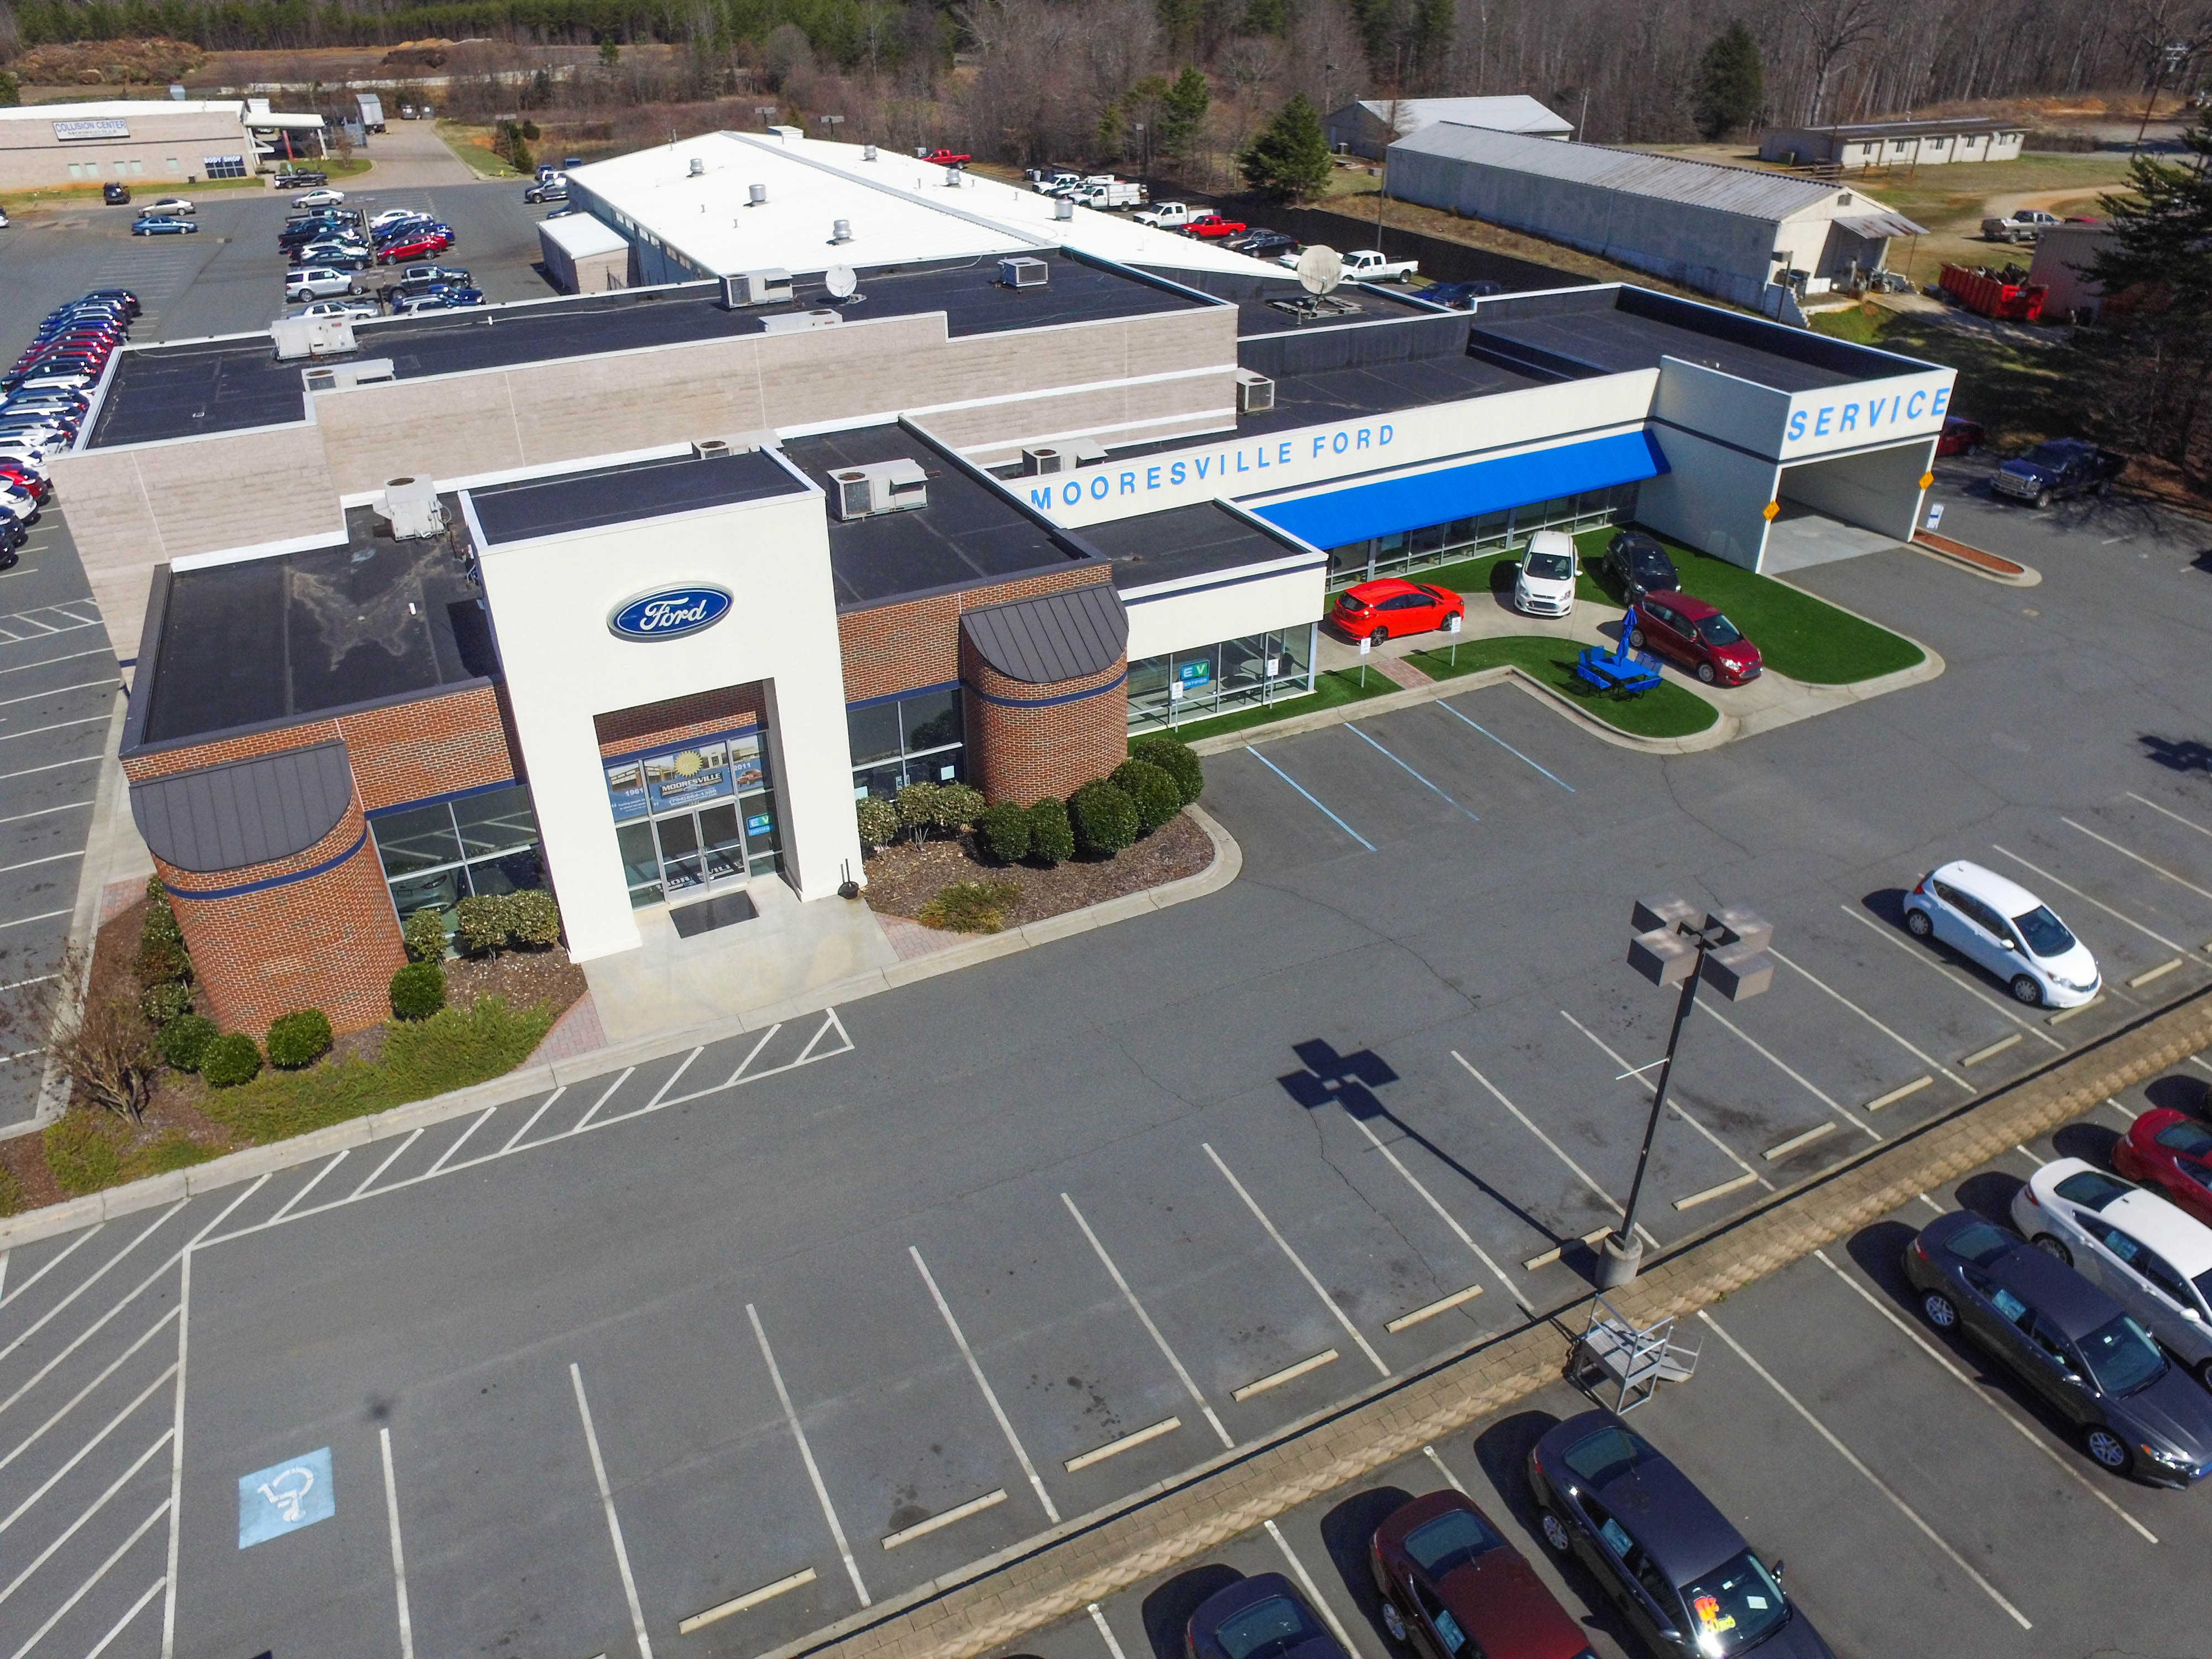 Mooresville Ford front